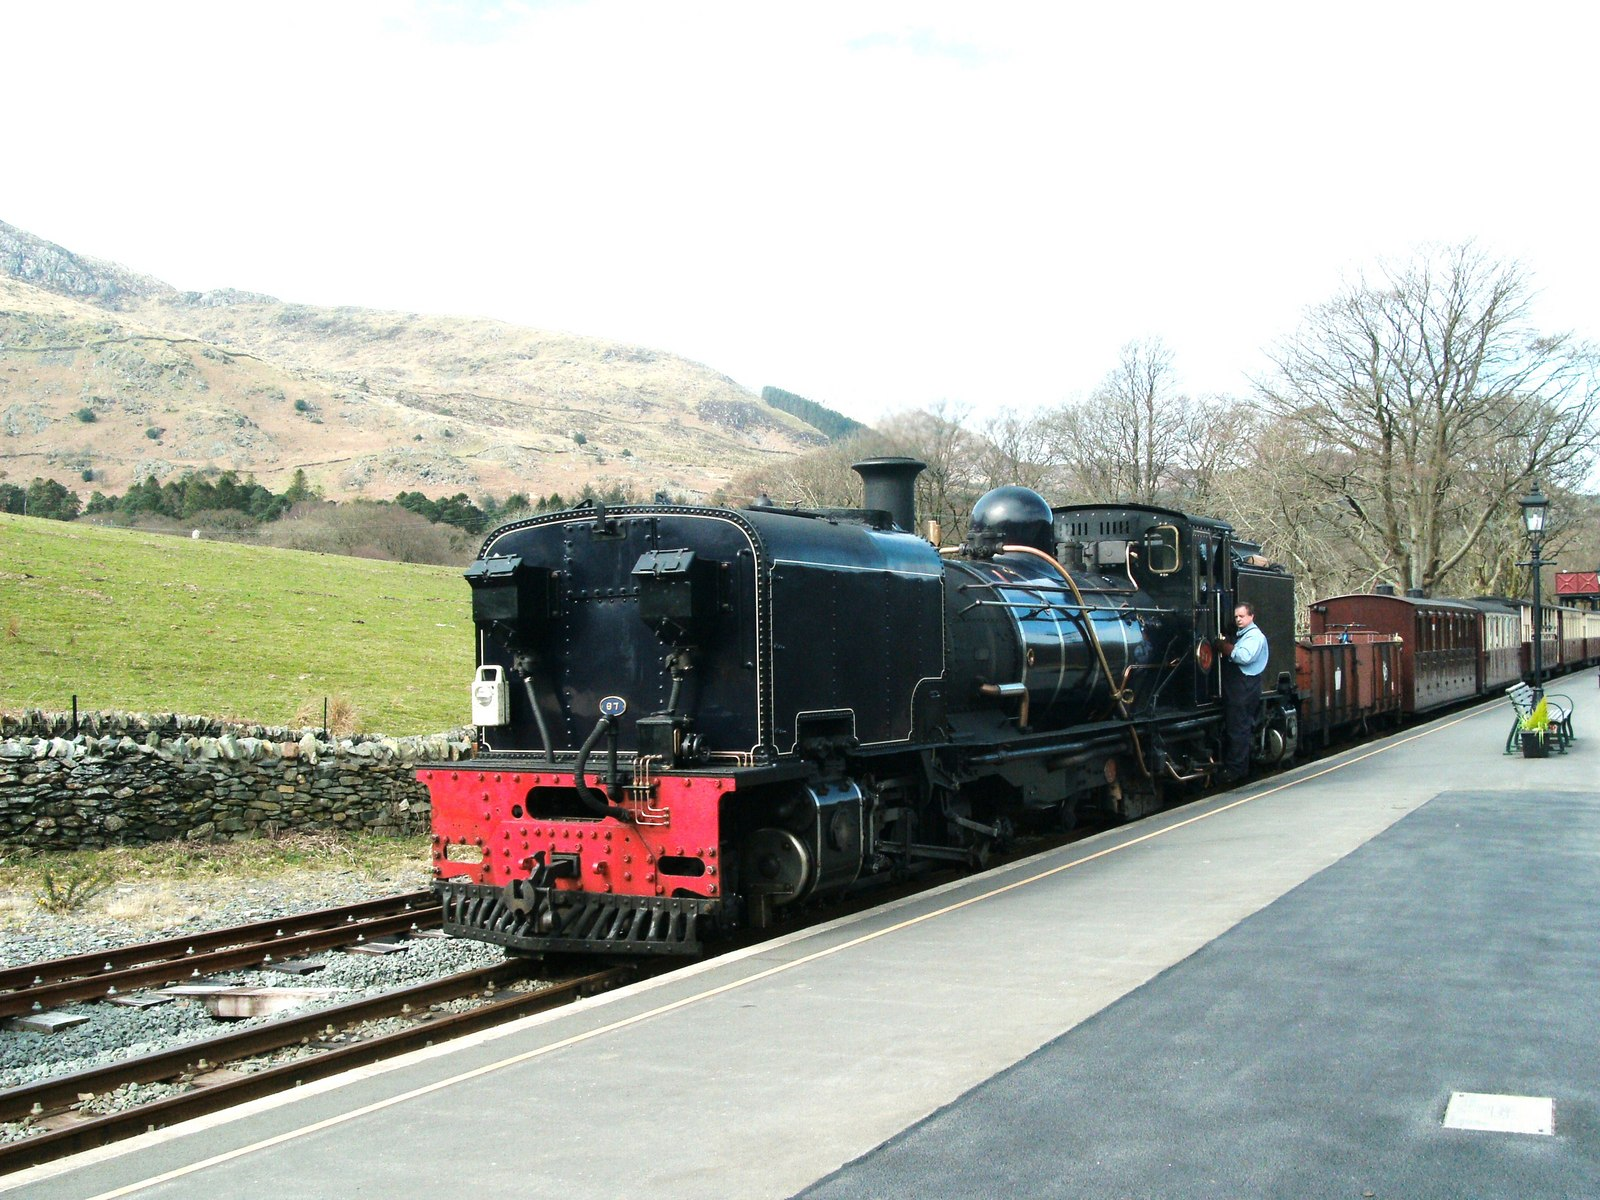 Coalporter: Steam Train Rides on England's Severn Valley Railway